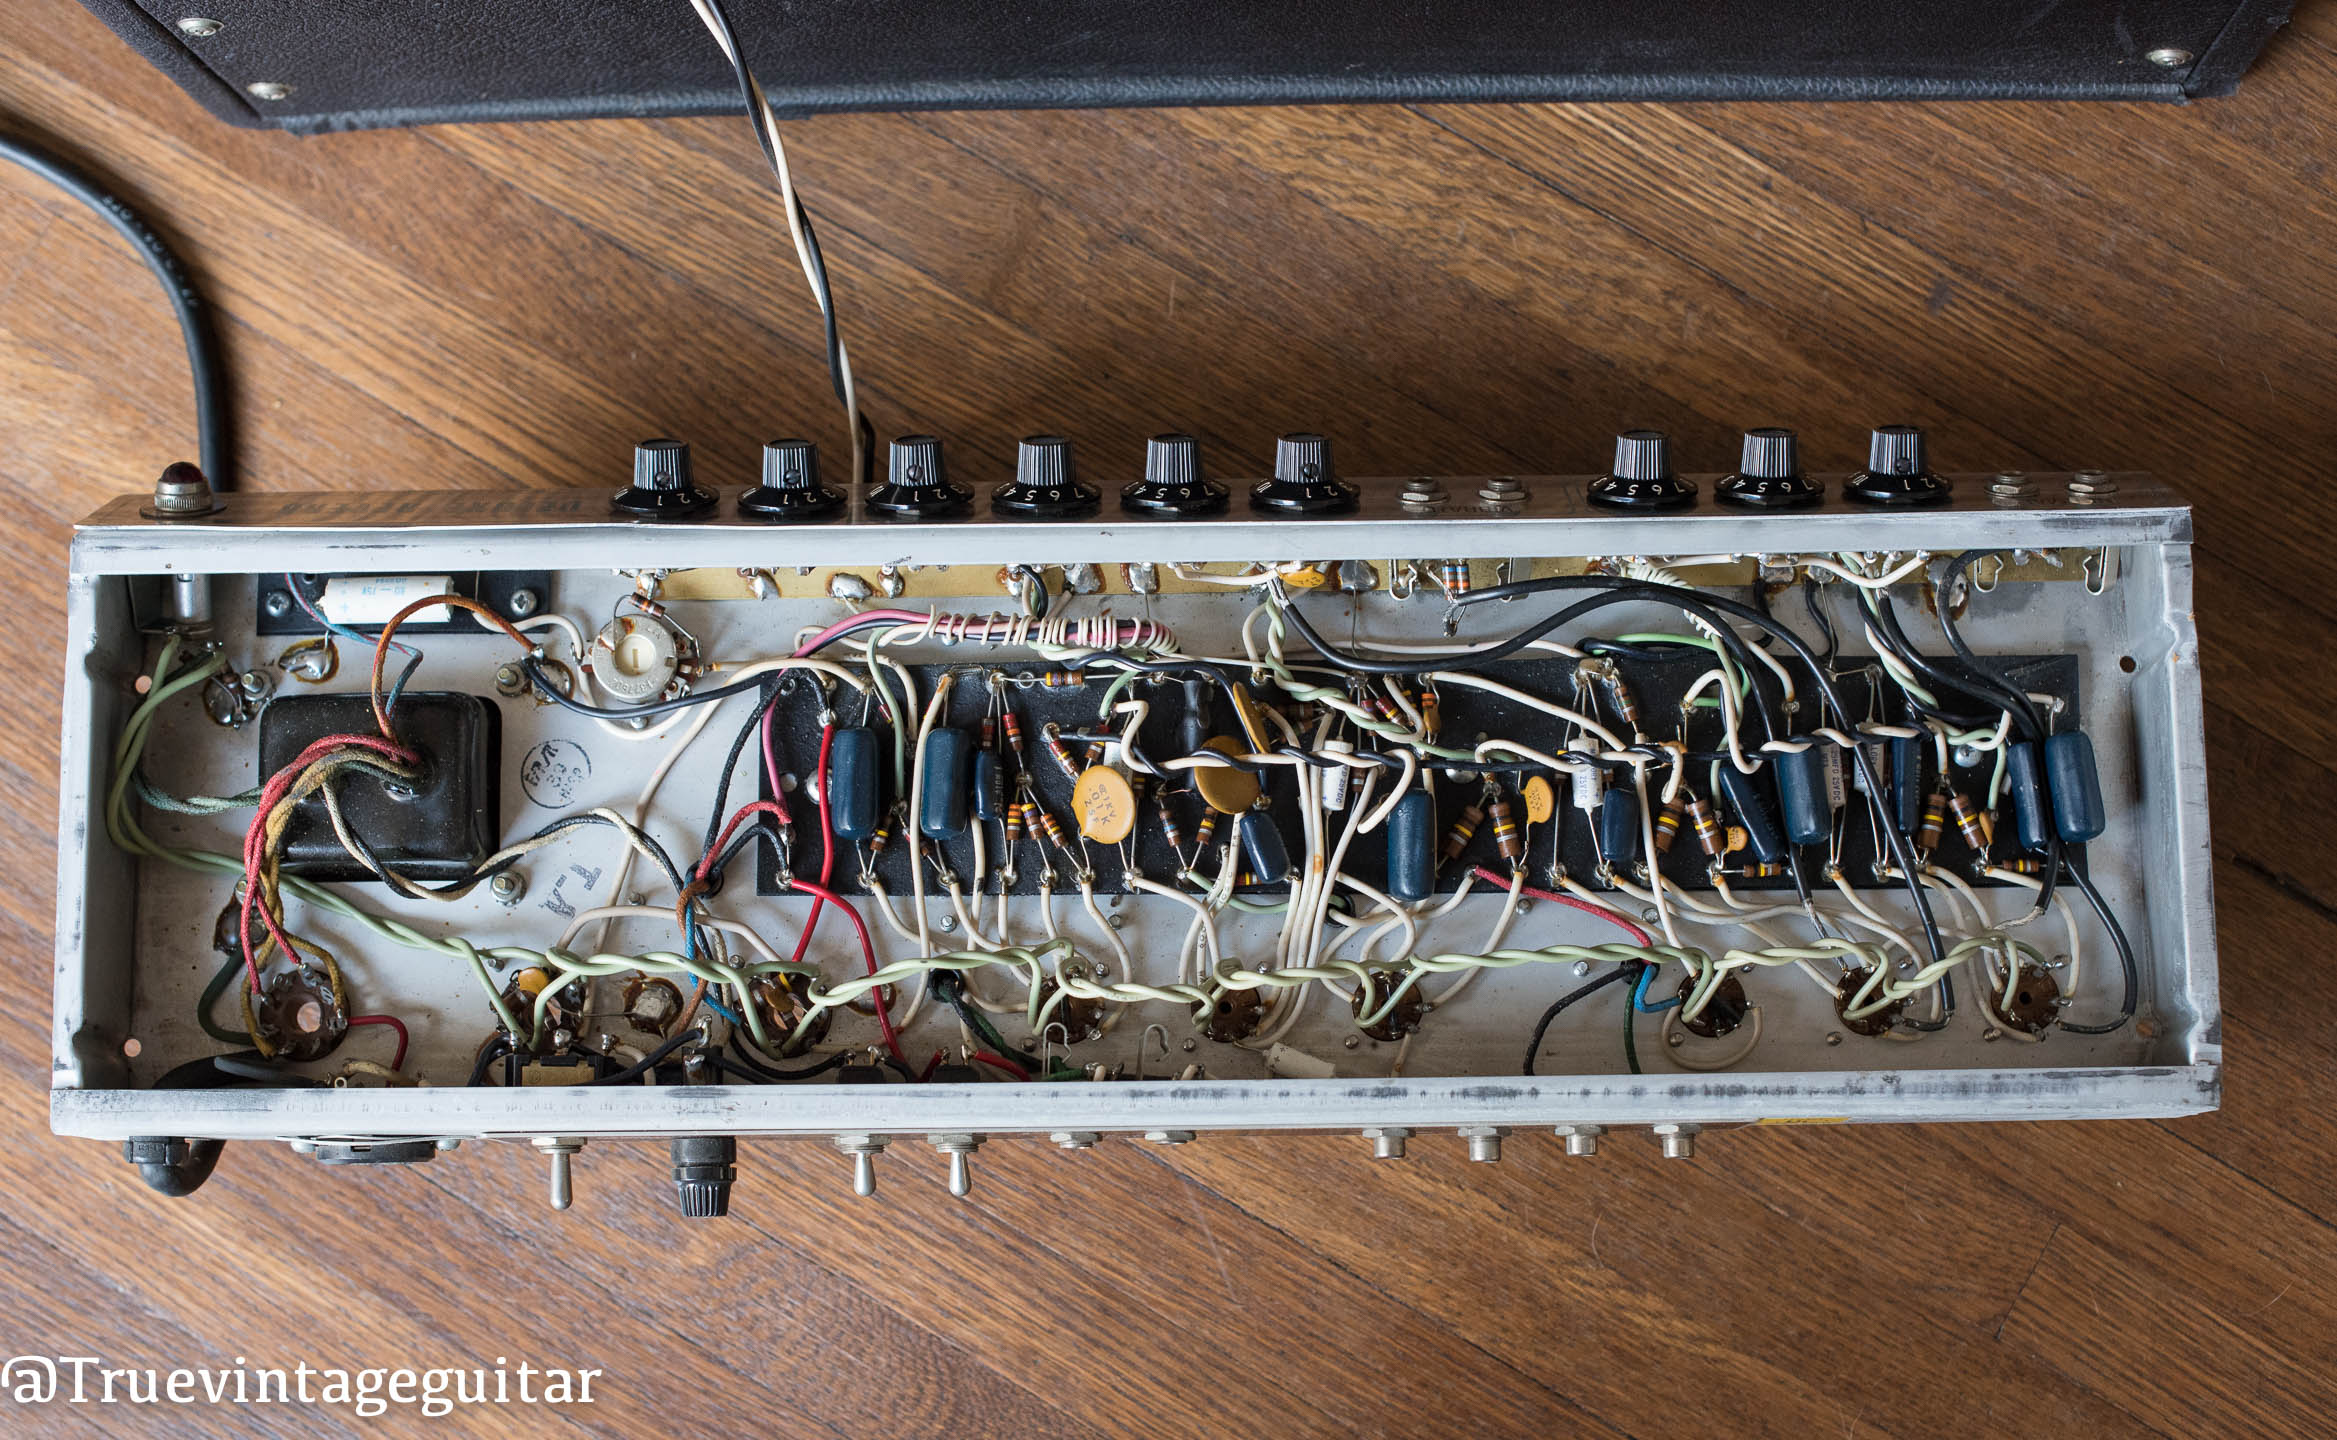 1976 Fender Deluxe Reverb chassis circuit